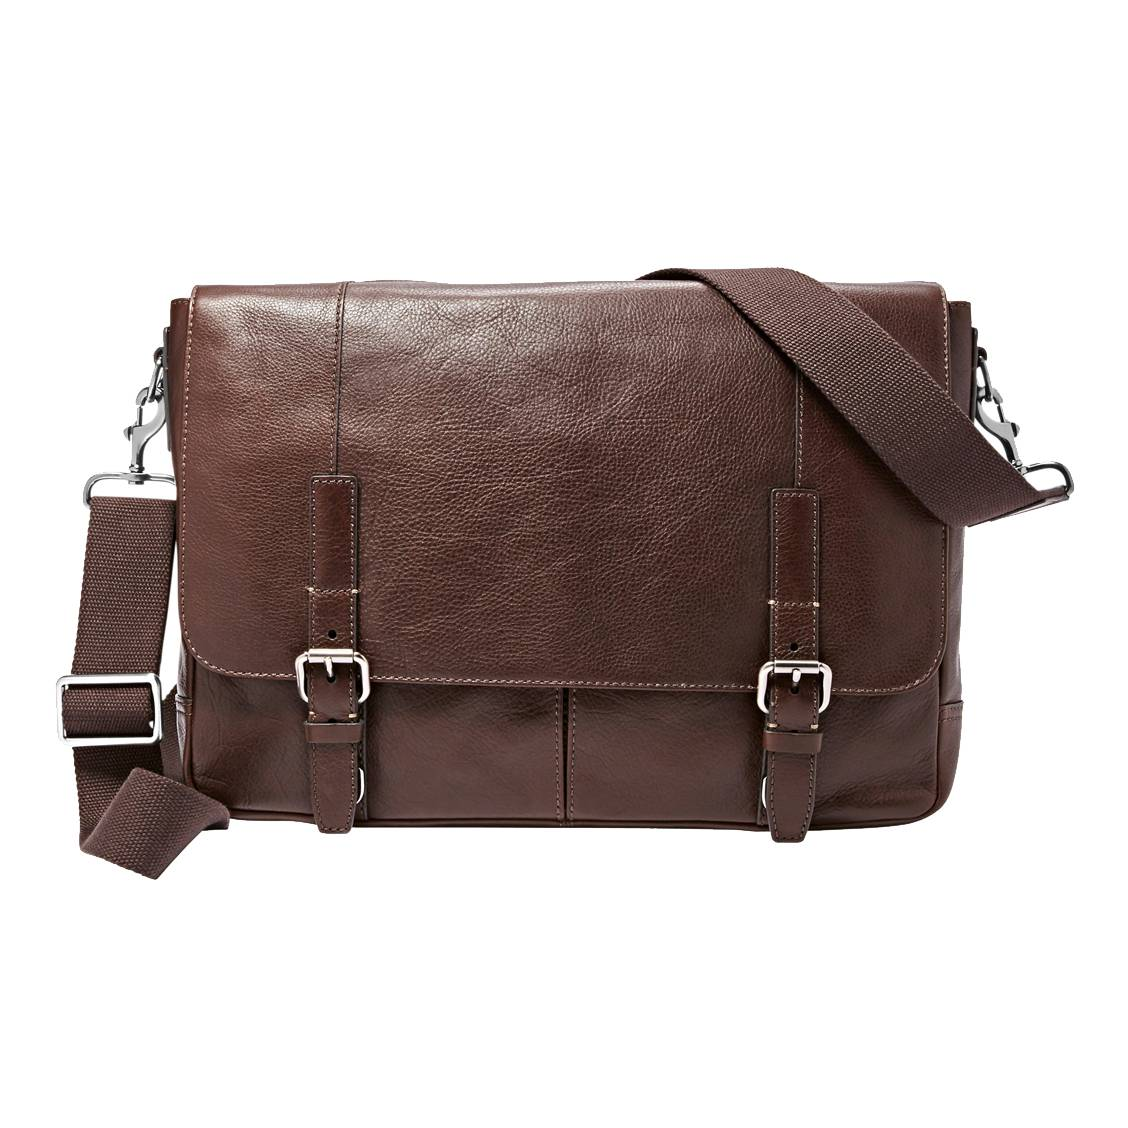 Portedocumentsordinateur Pouces Graham Fossil En Cuir Marron - Porte document fossil